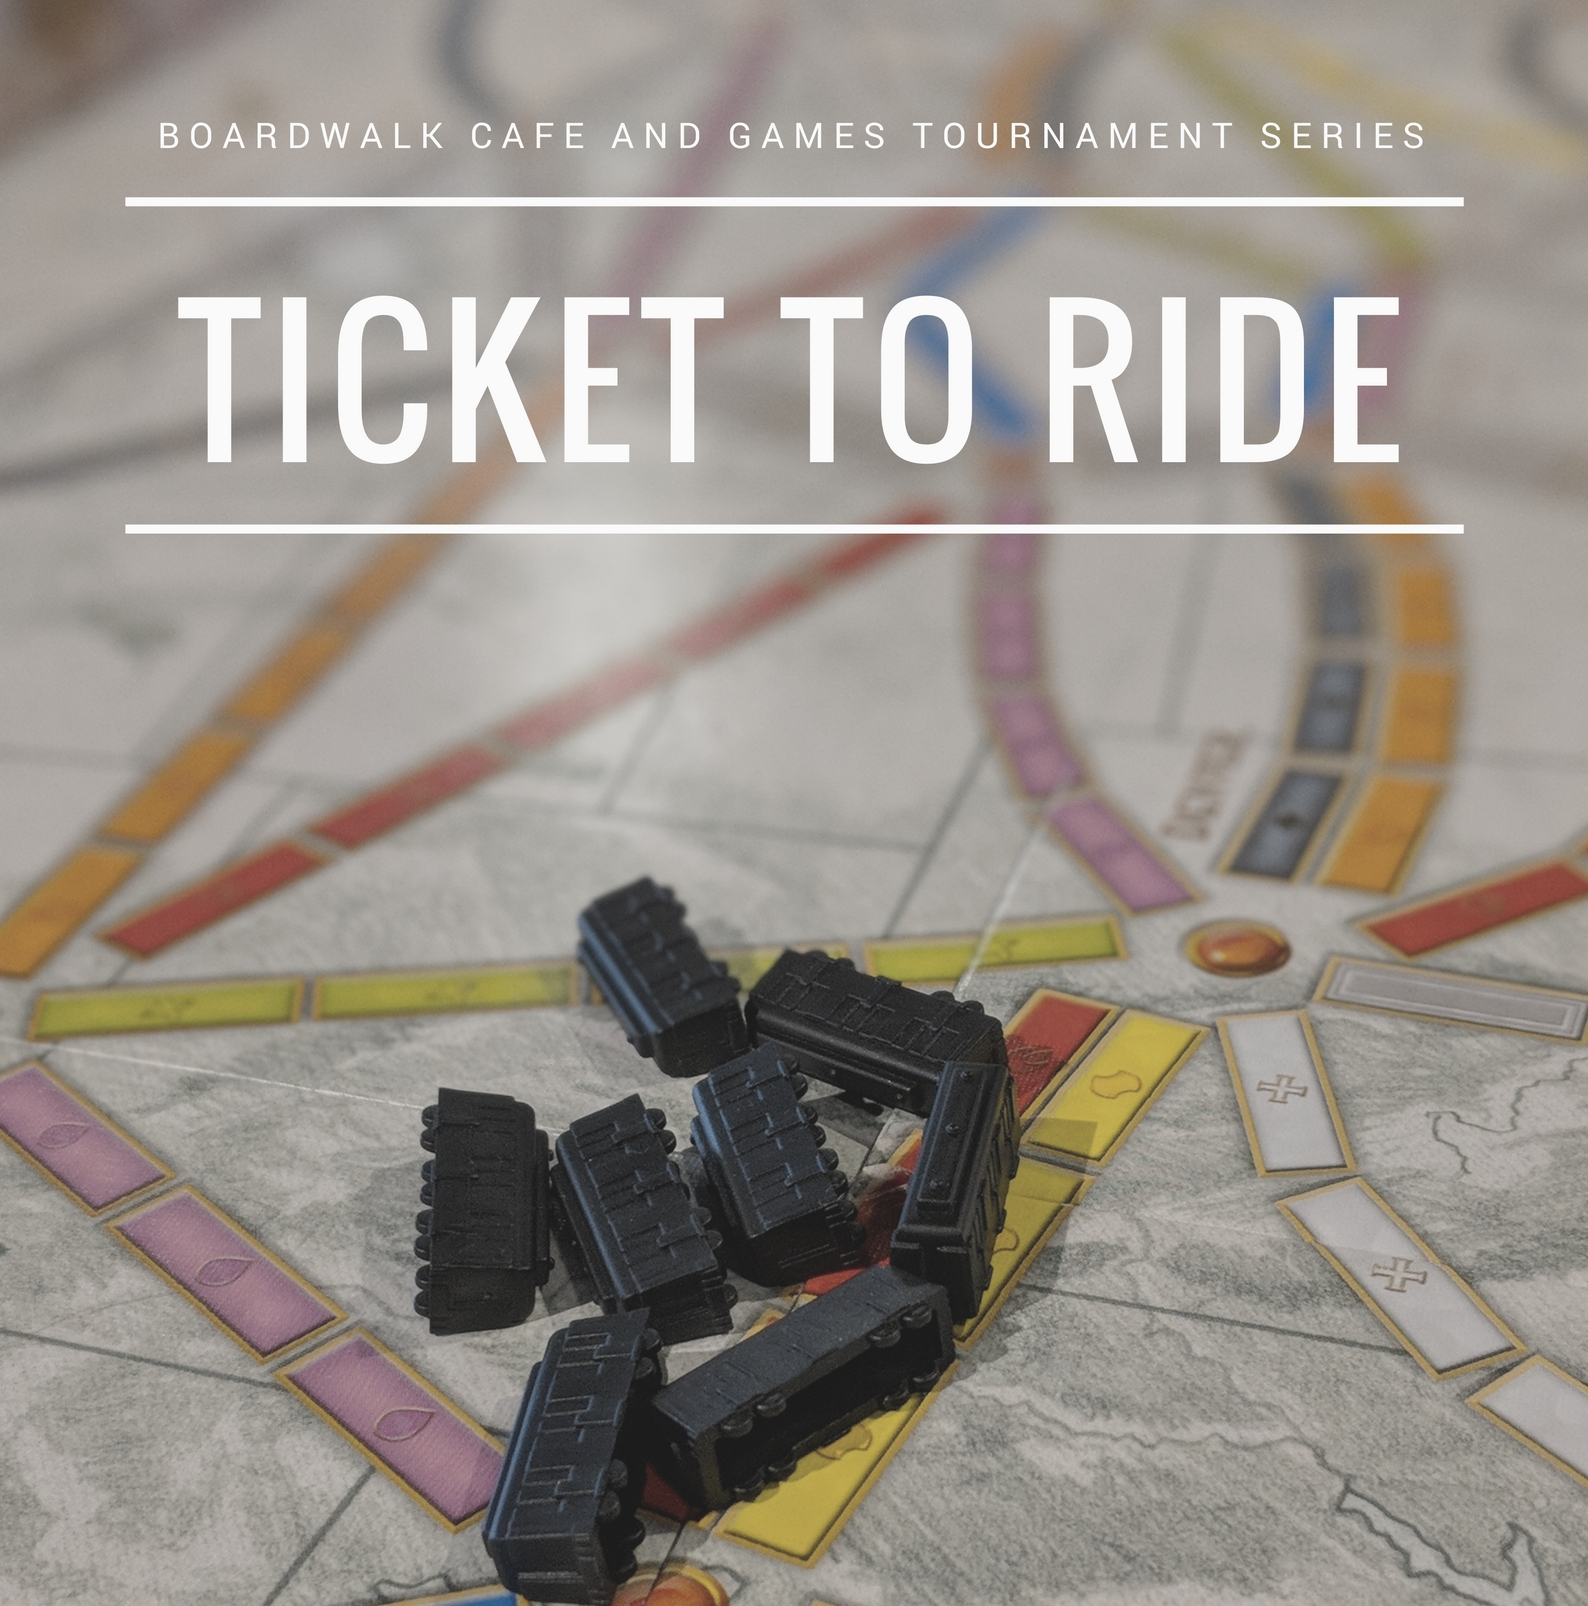 ticket to ride tournament poster.jpg